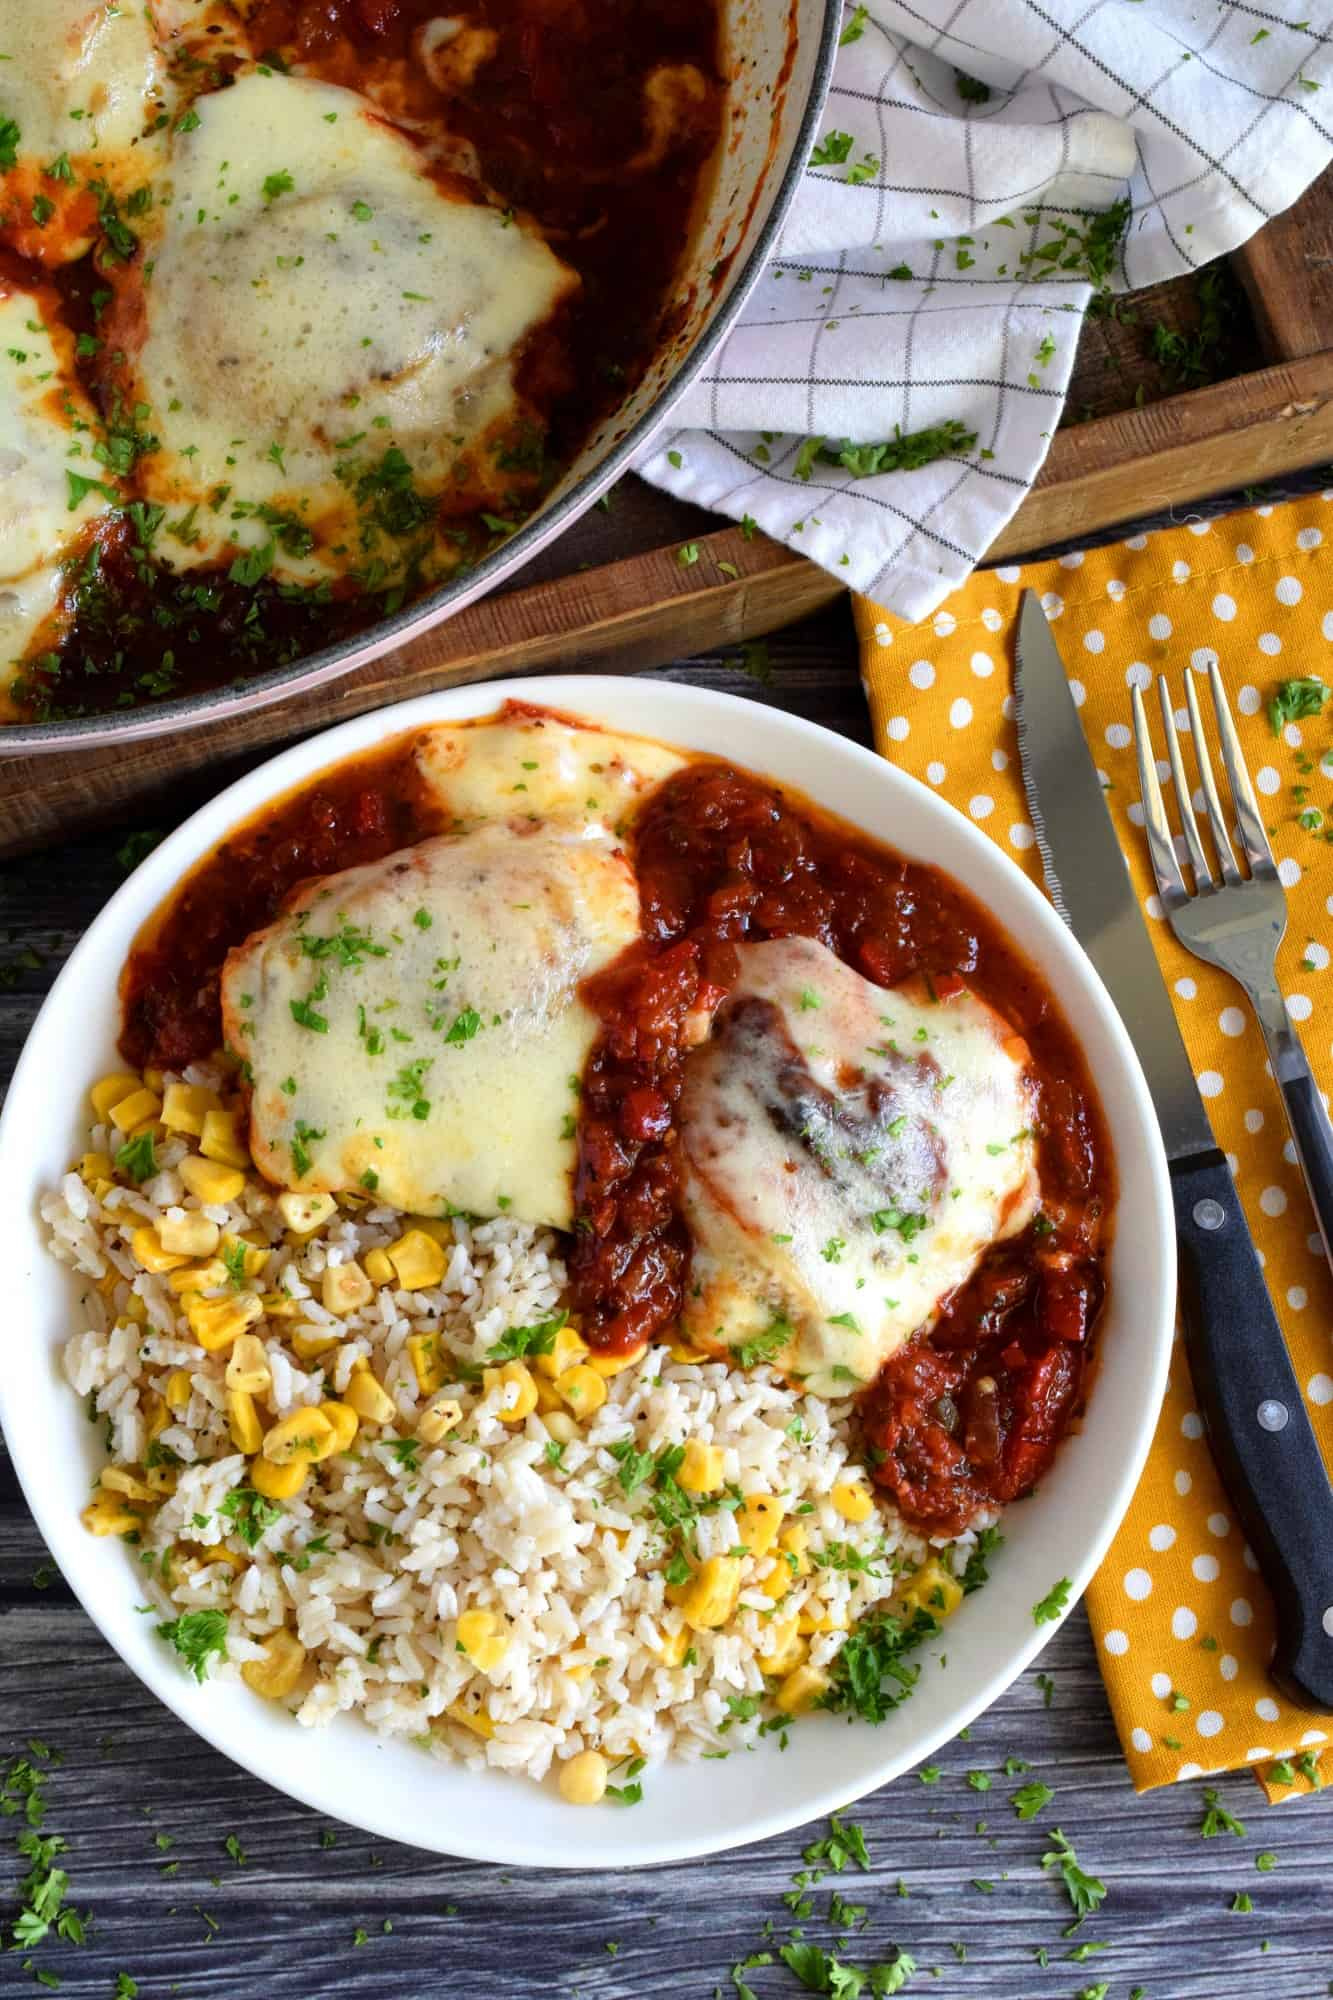 Cheesy Baked Chicken In Stewed Tomato Sauce